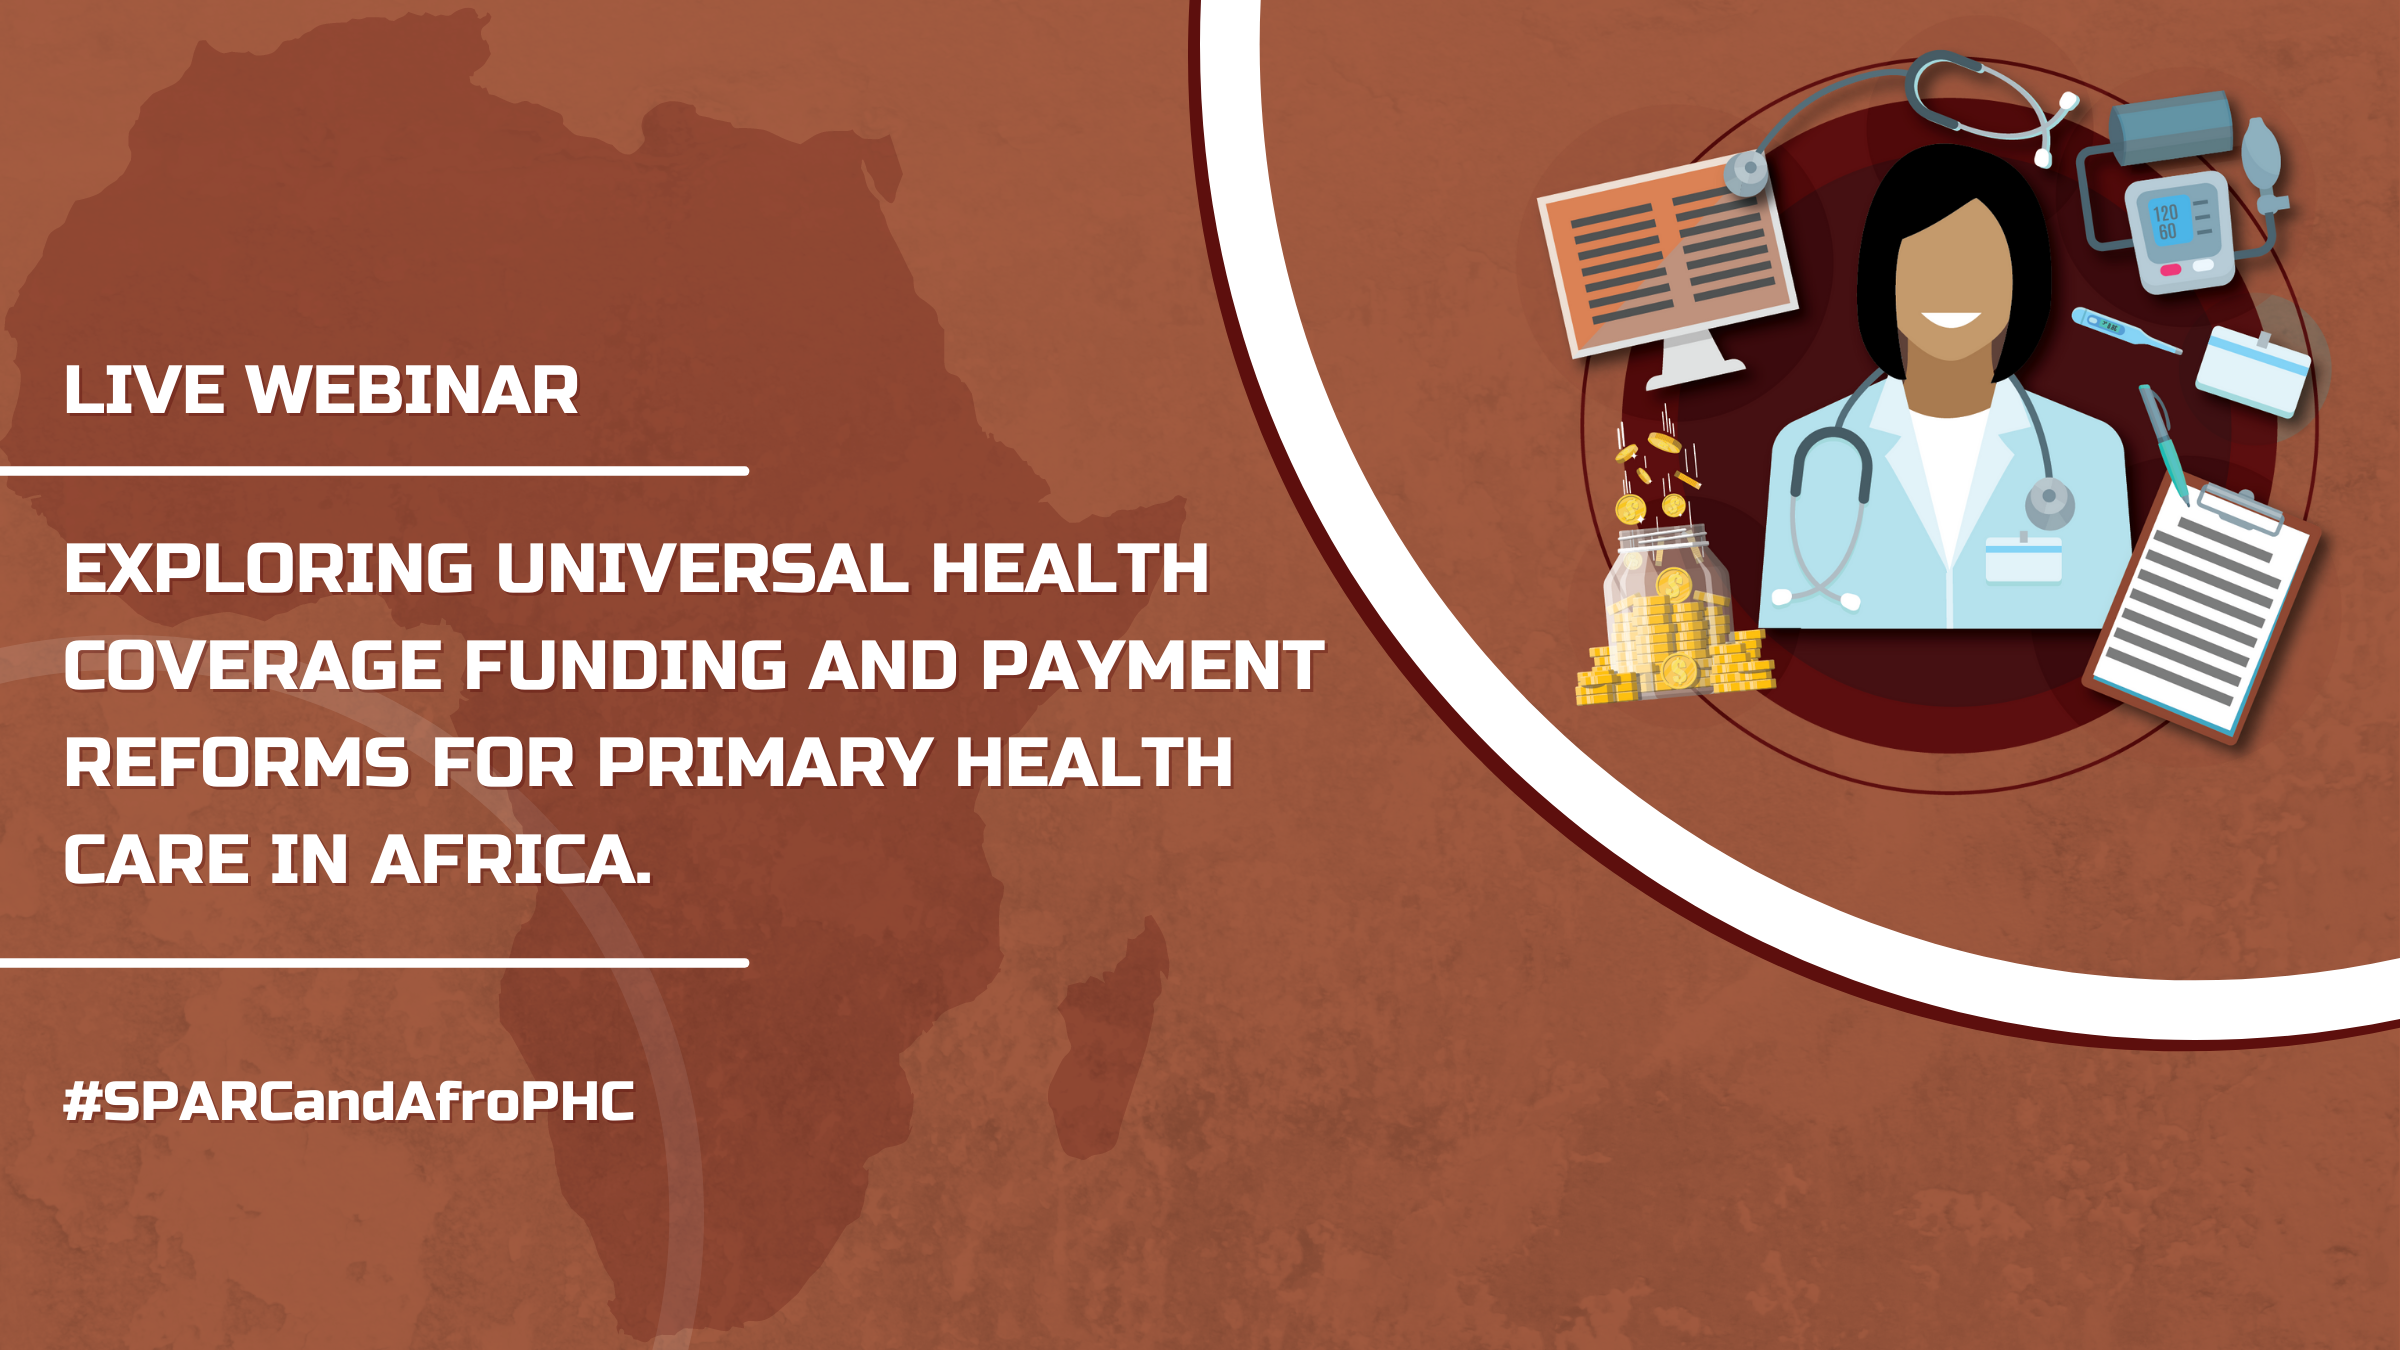 """SPARC and AfroPHC Joint Webinar on """"Exploring UHC Funding and Payment Reforms for PHC in Africa."""" Held on 27th of July"""